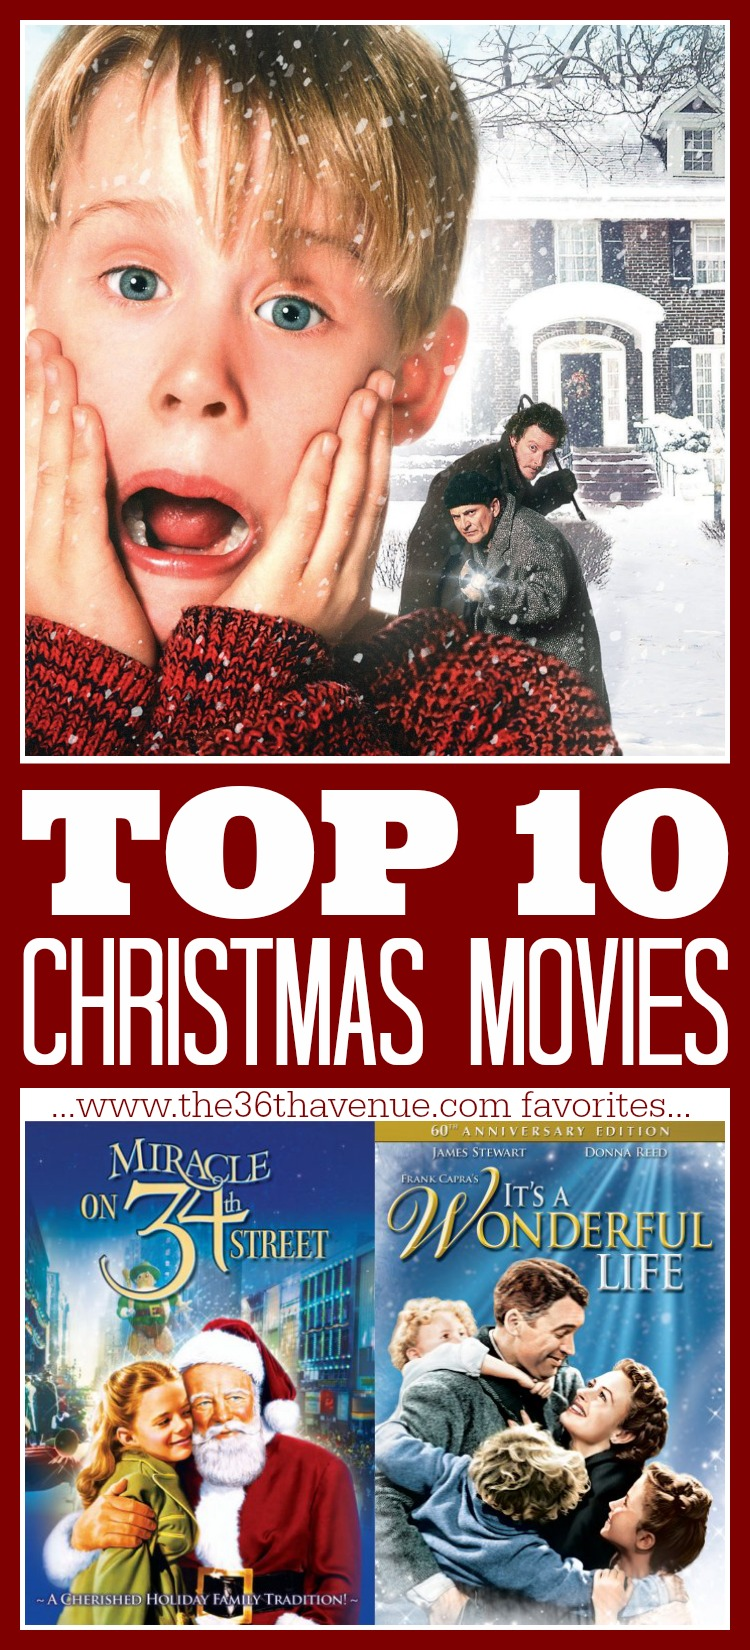 christmas movies xmas favorites films holiday them favorite the36thavenue hallmark avenue christian want 36th ready